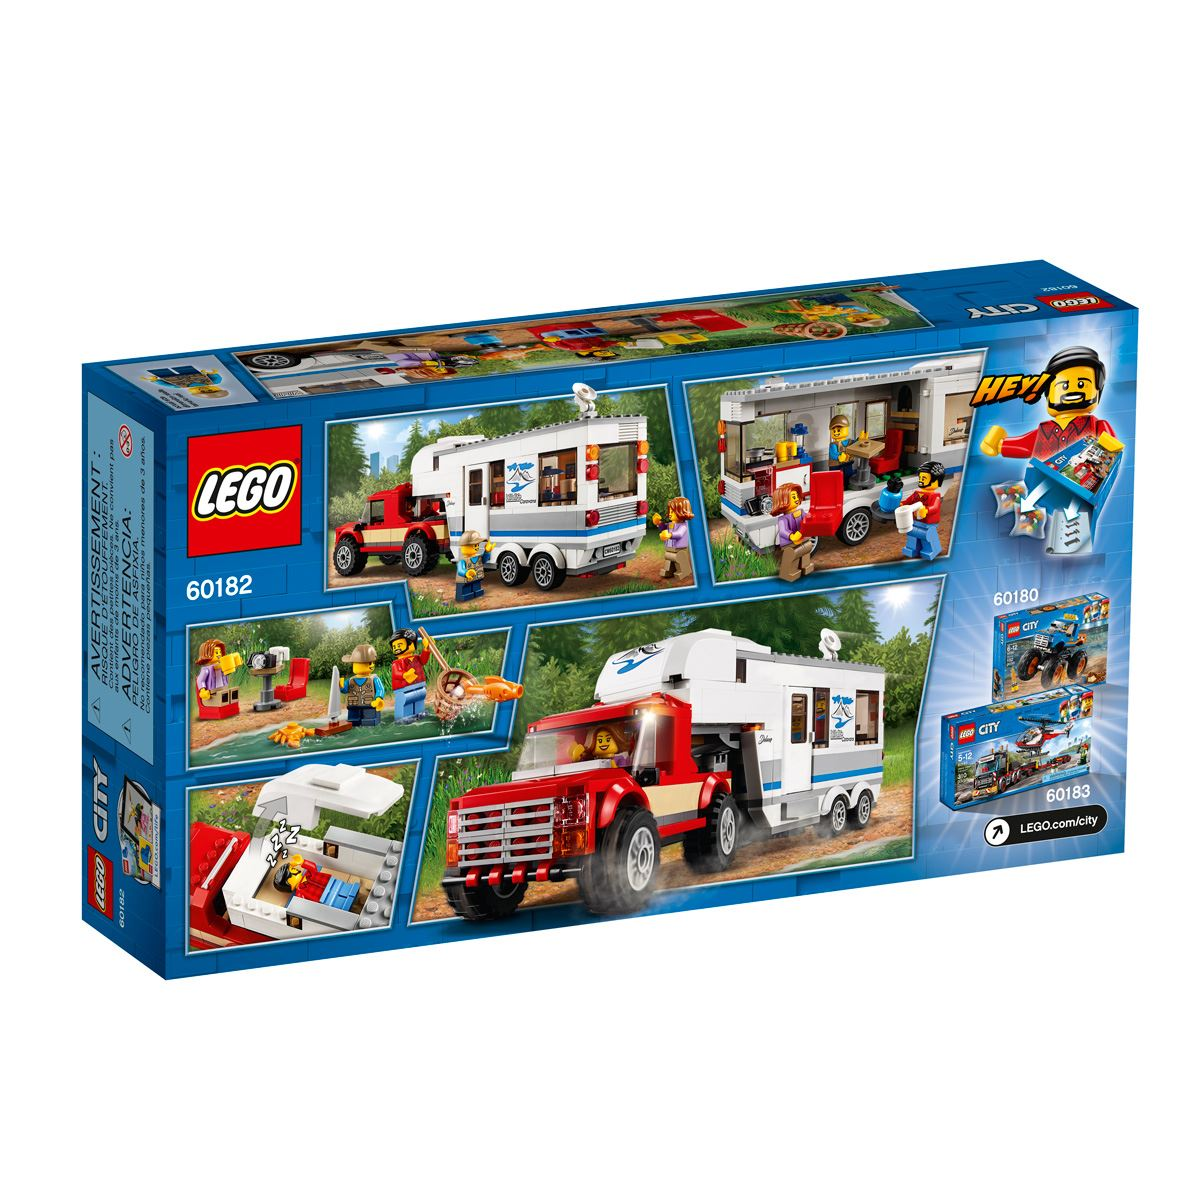 Lego city great vehicles camioneta y remolque  - Sanborns